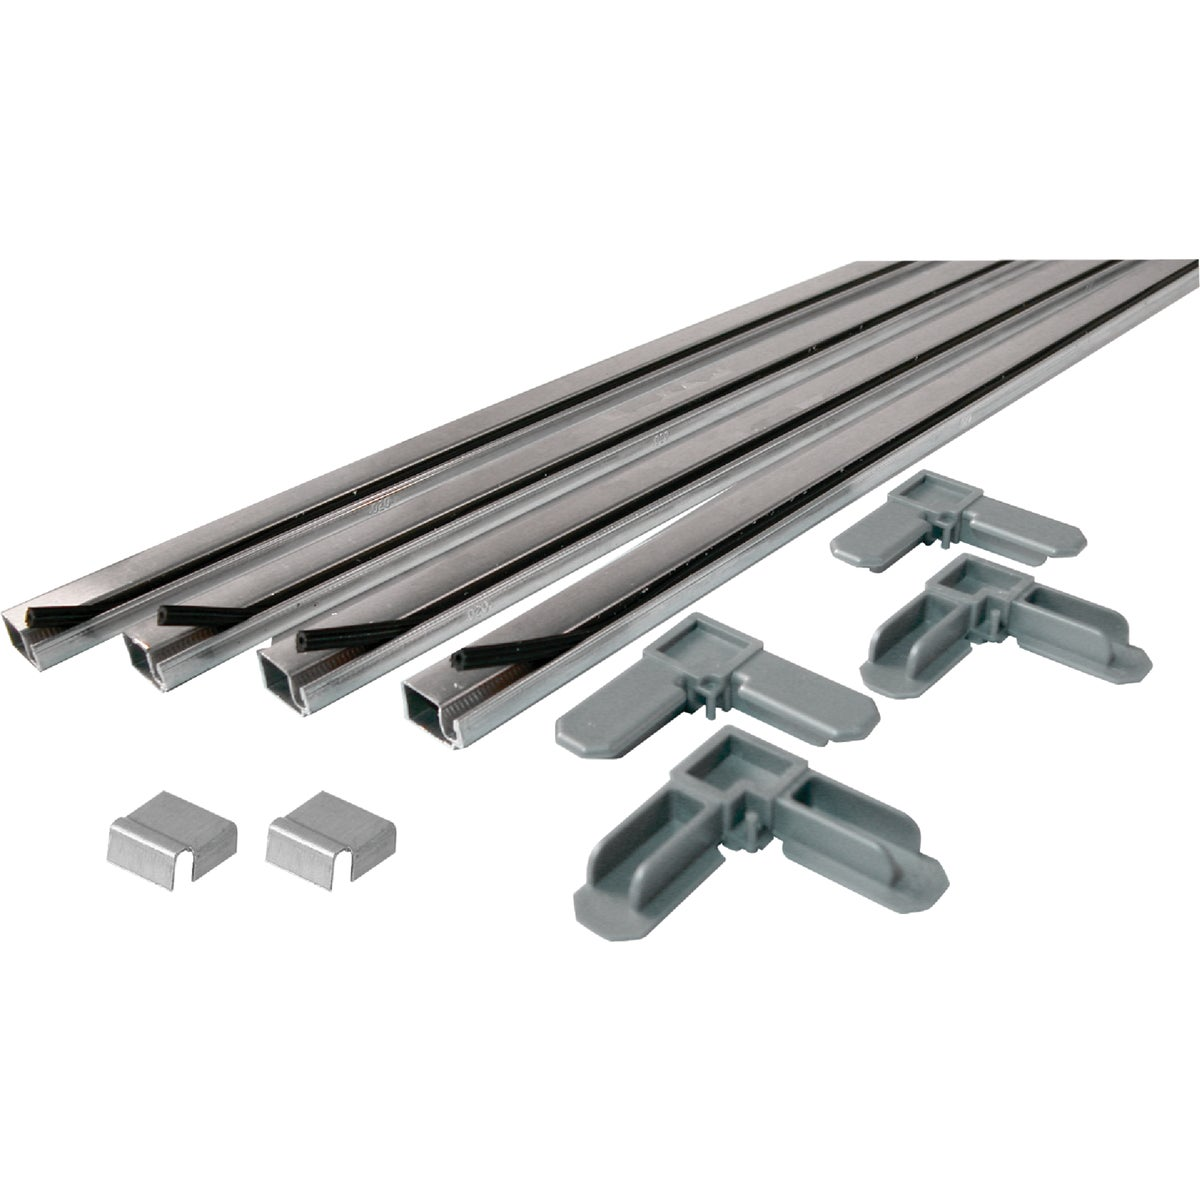 7/16X3/4X5'SCN FRAME KIT - PL7802 by Prime Line Products